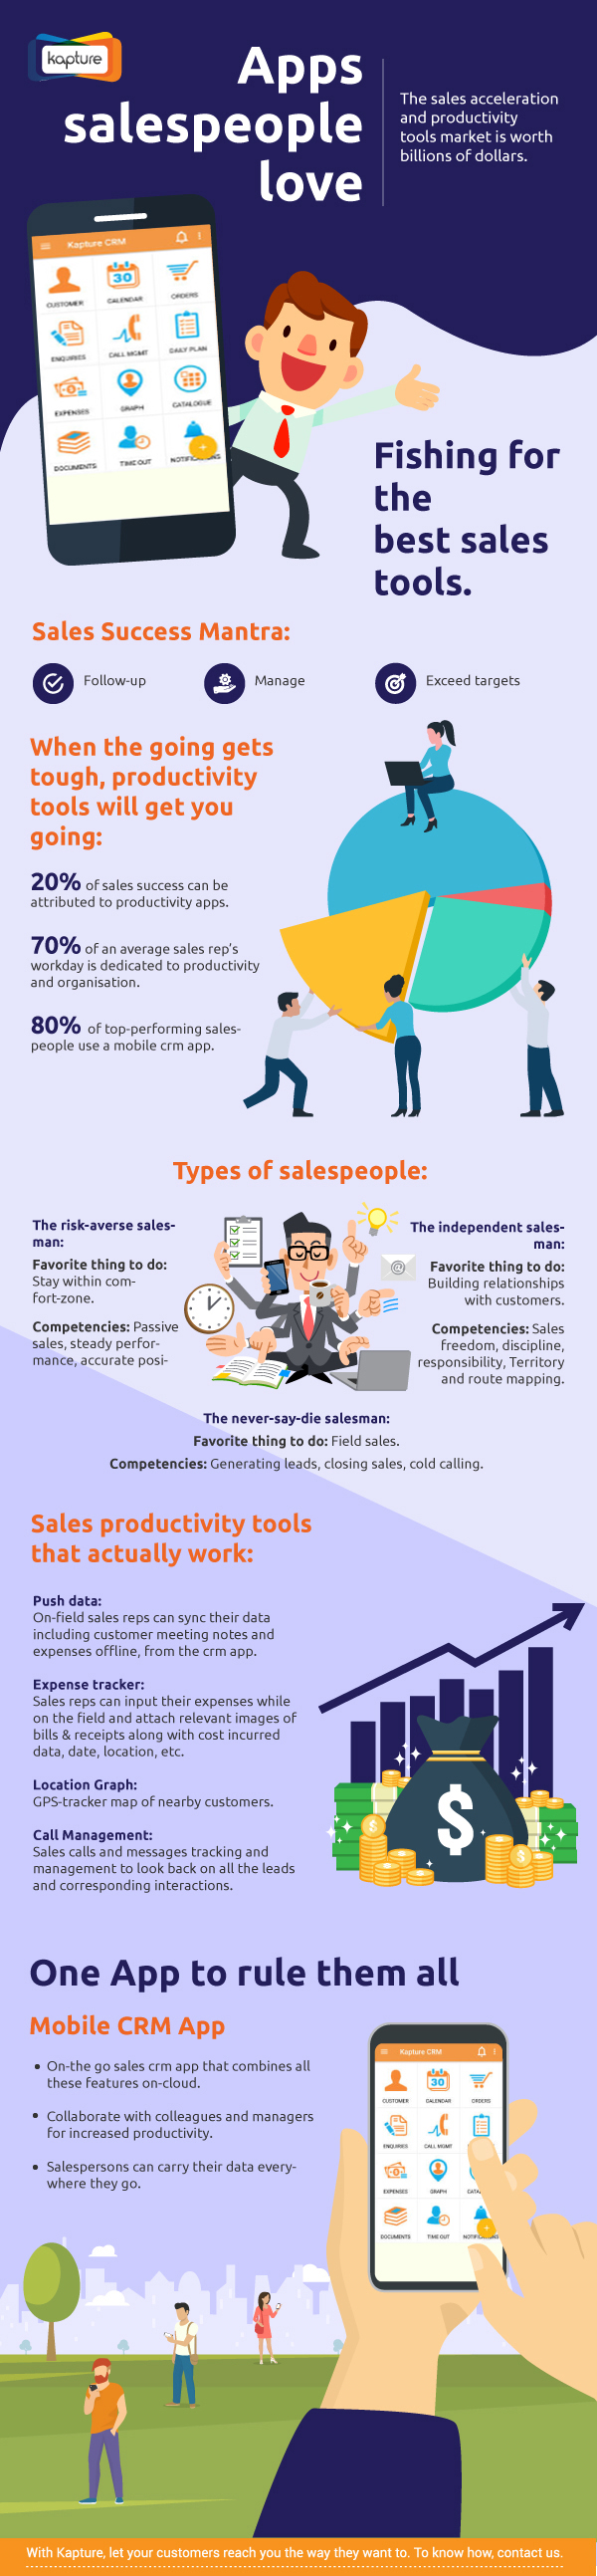 Salespeople need productivity tools to stay organised and manage everyday sales tasks. Learn more about the ultimate mobile crm app that combines all sales productivity tools, in this infographic.